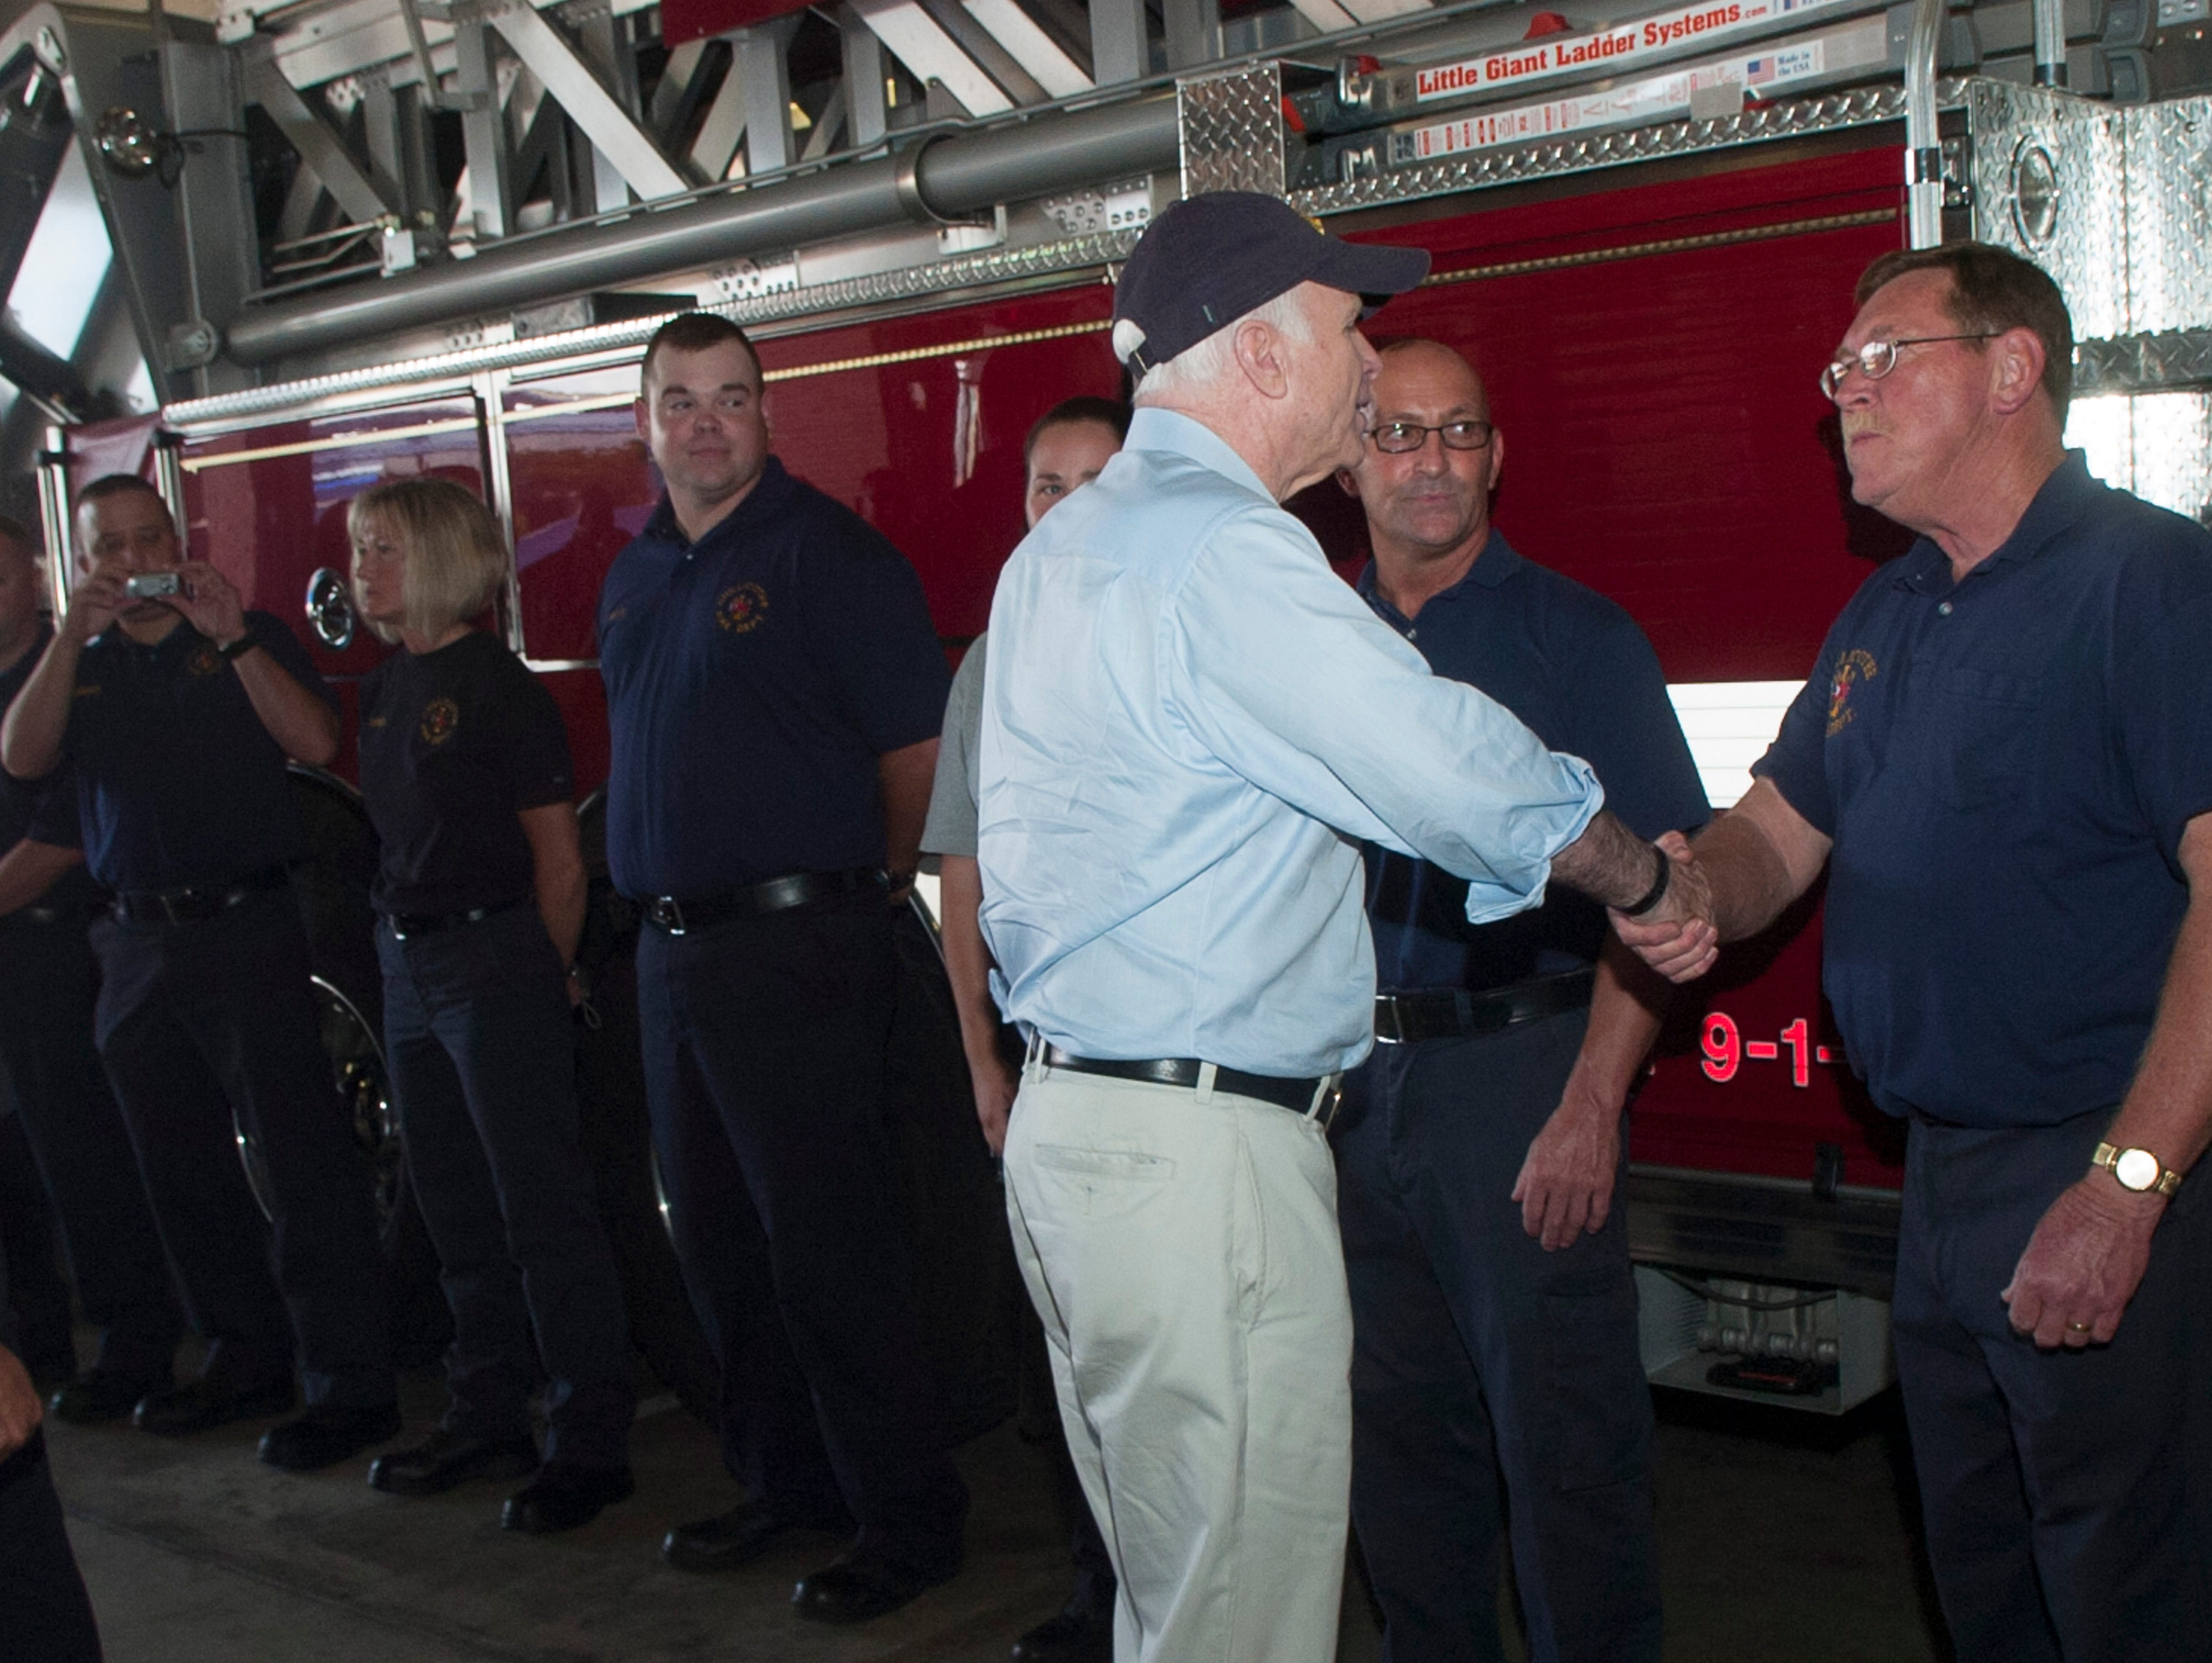 John McCain shakes hands as he walks through the main fire station of the Chillicothe Fire Department on Wednesday, August 6, 2008.